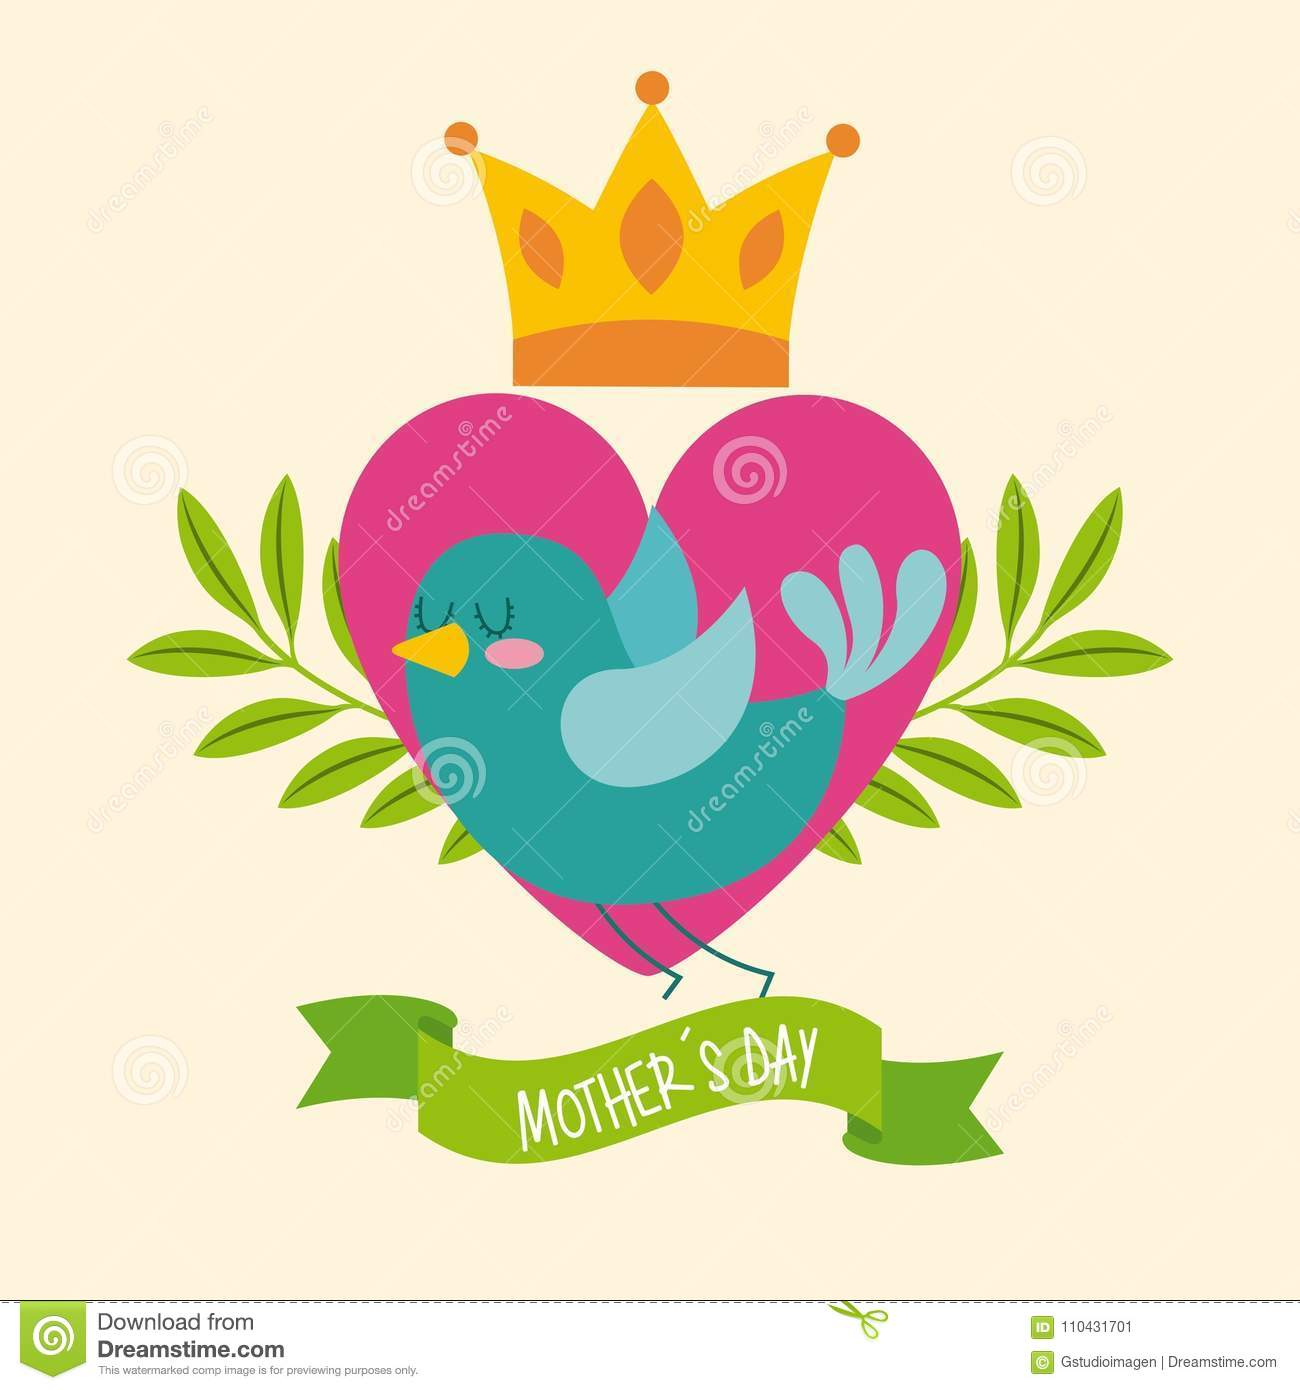 Green Bird Heart Crown Leaves Ribbon Mothers Day Stock Vector